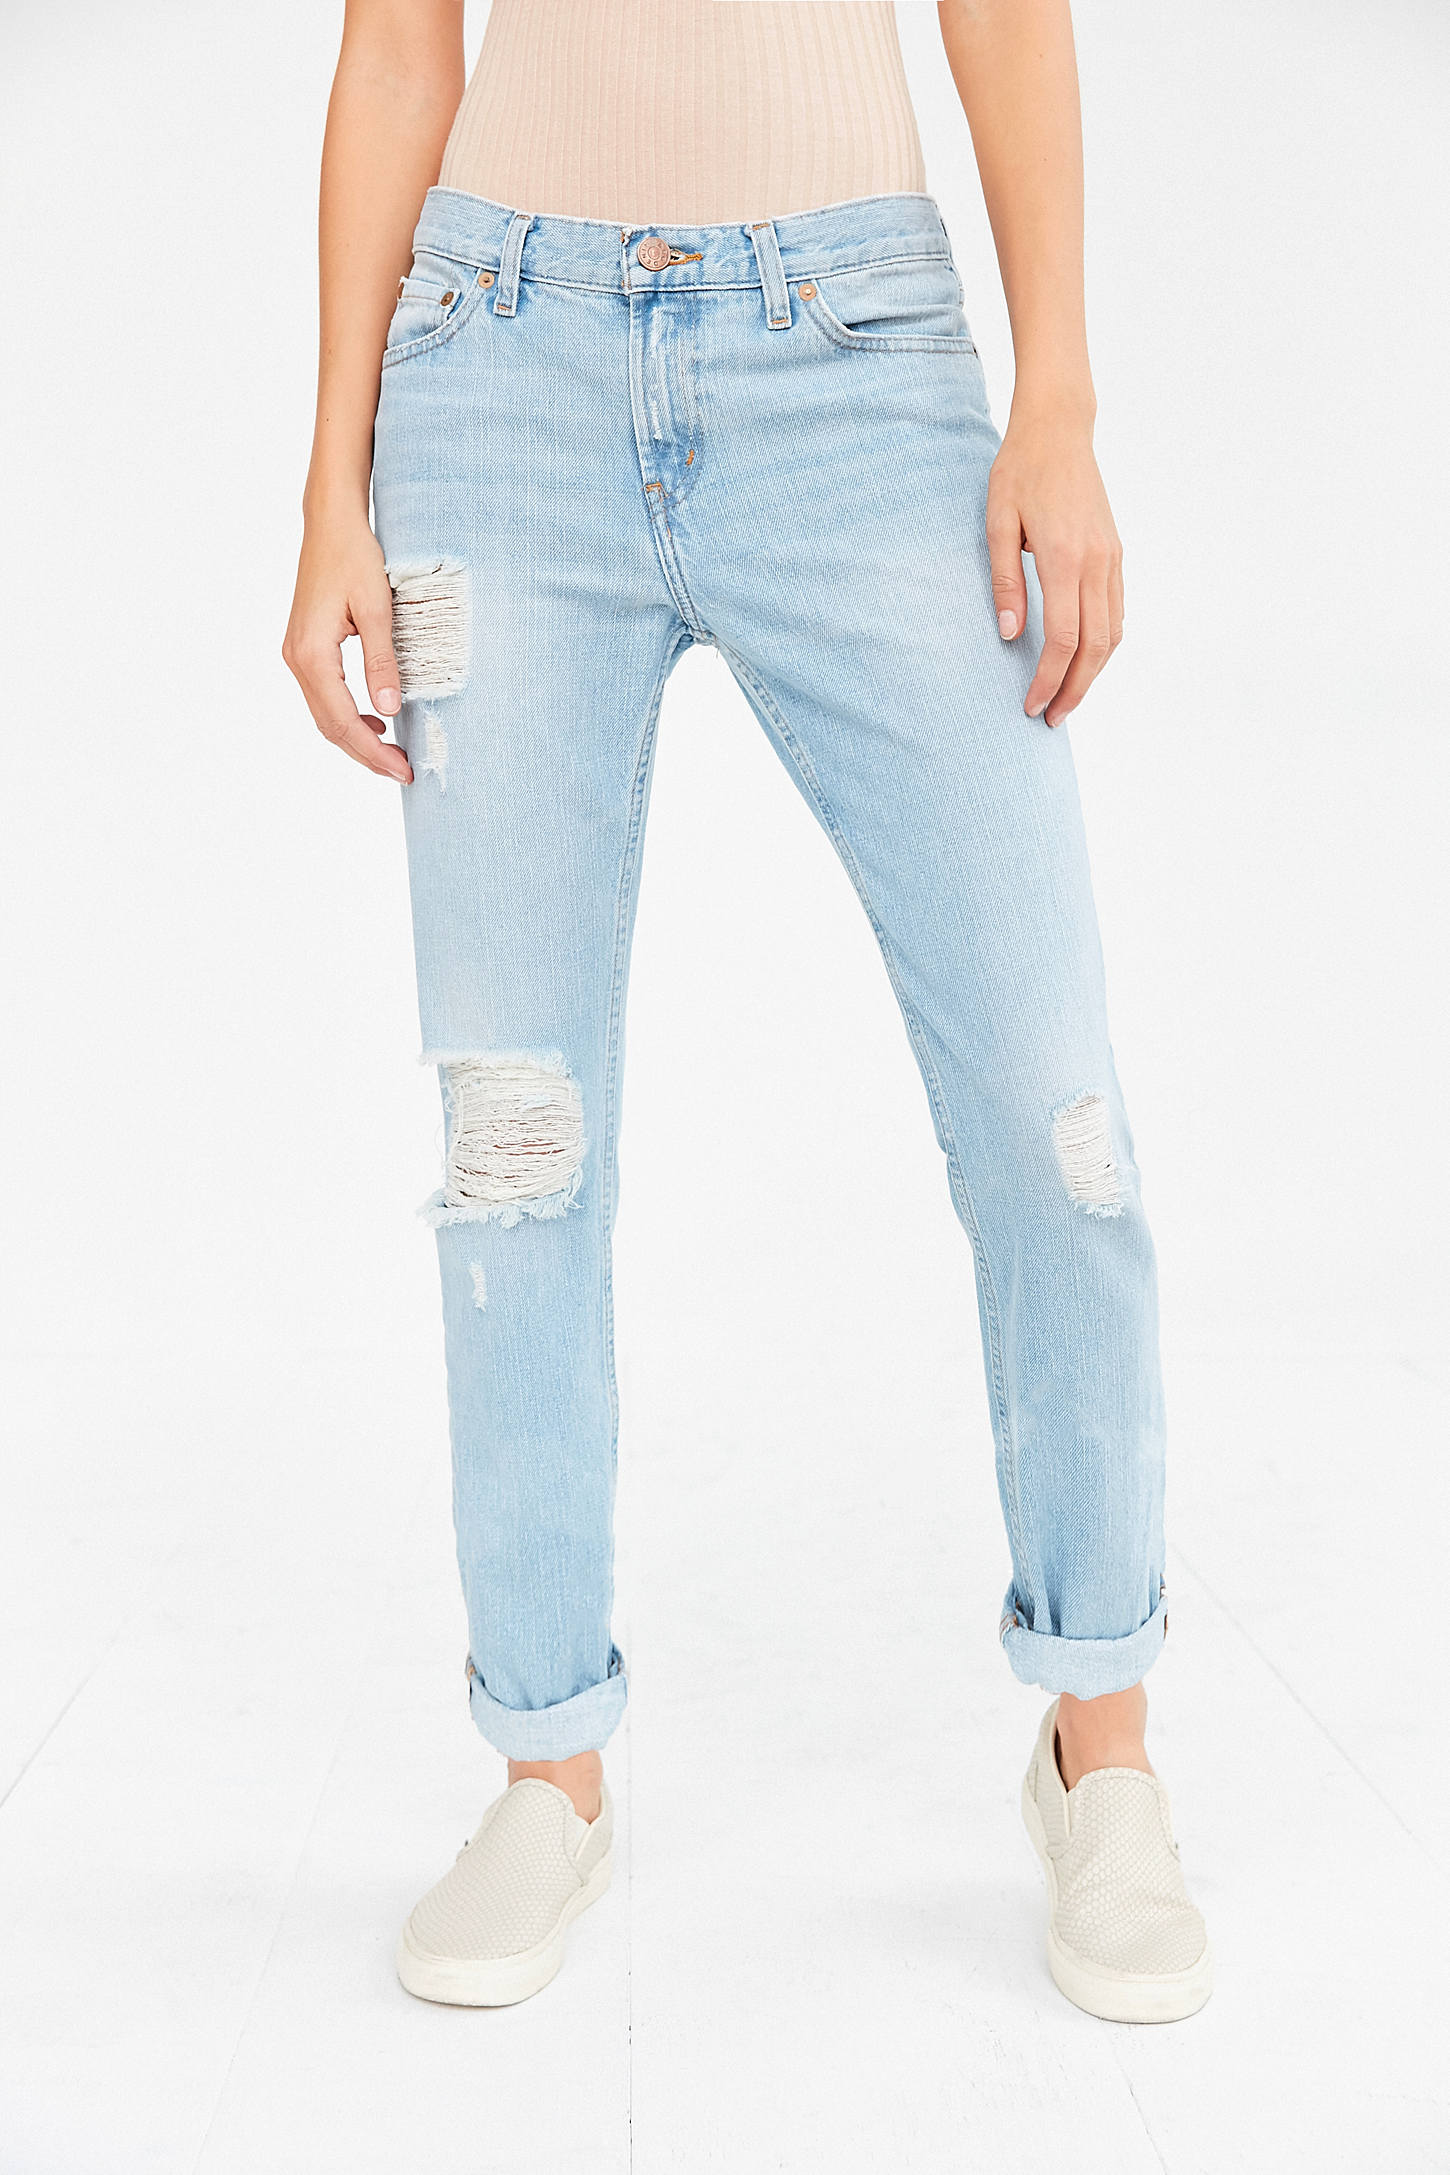 BDG Slim Boyfriend Jean - Light Denim Slash | Urban Outfitters